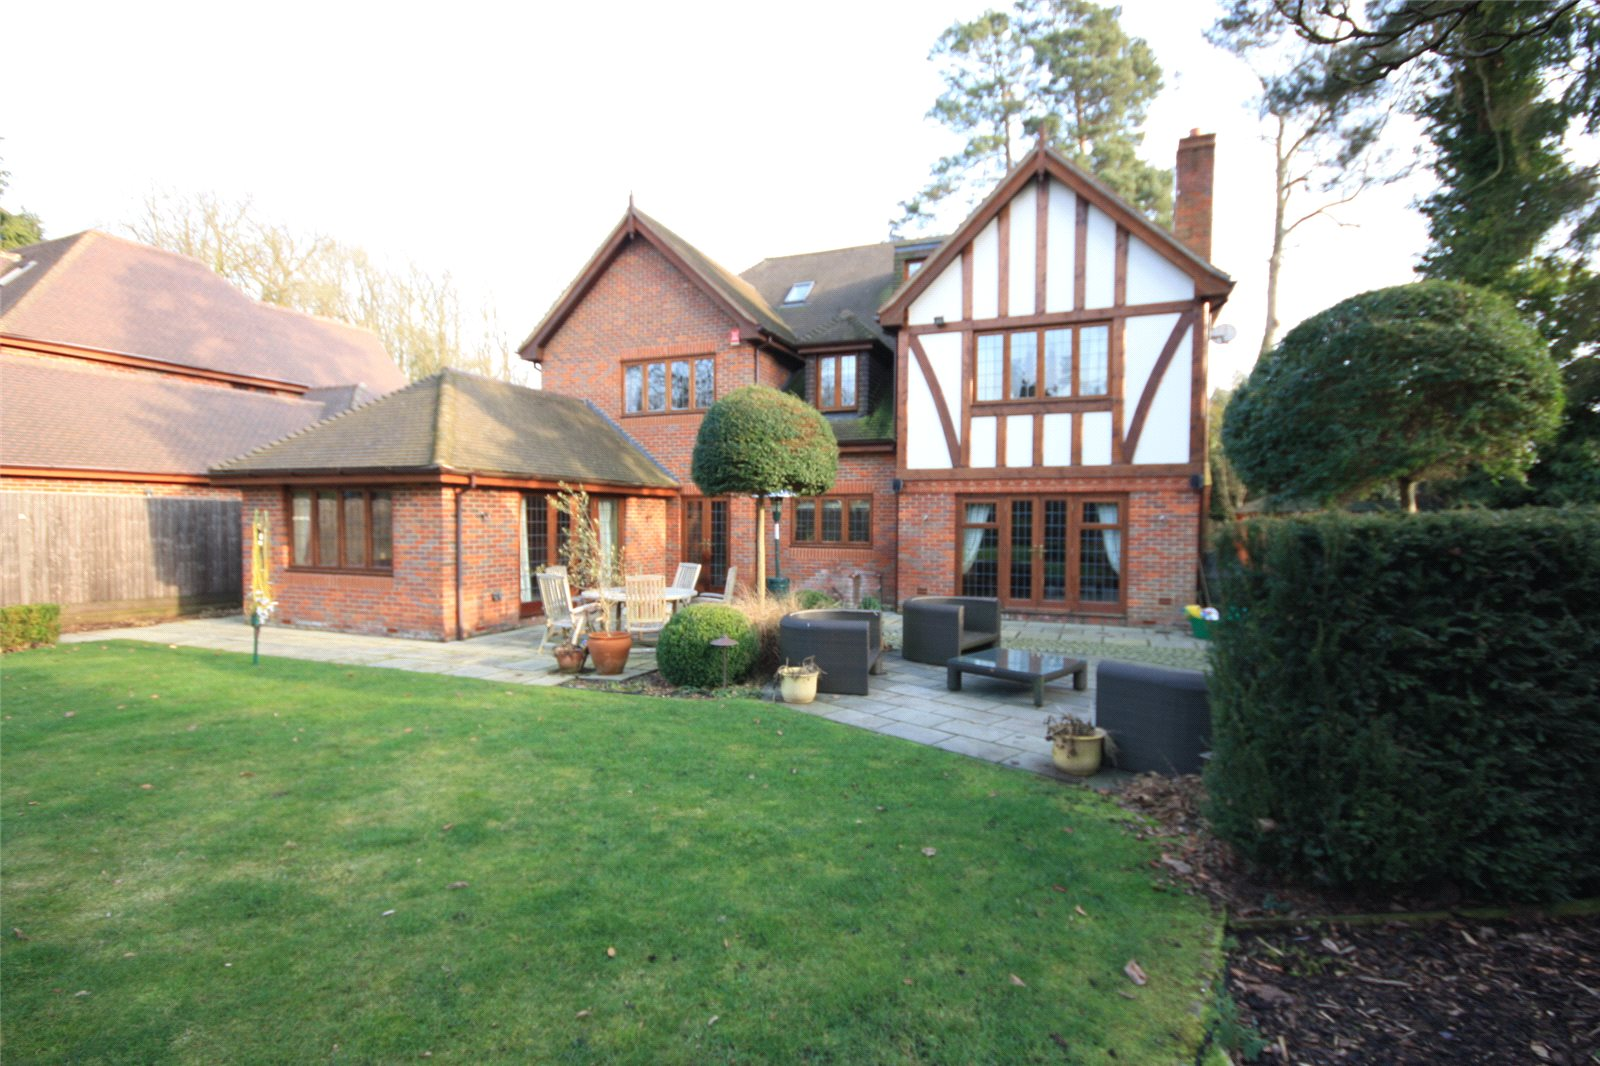 Additional photo for property listing at Deadhearn Lane, Chalfont St Giles, Buckinghamshire, HP8 Chalfont St Giles, Ingiltere